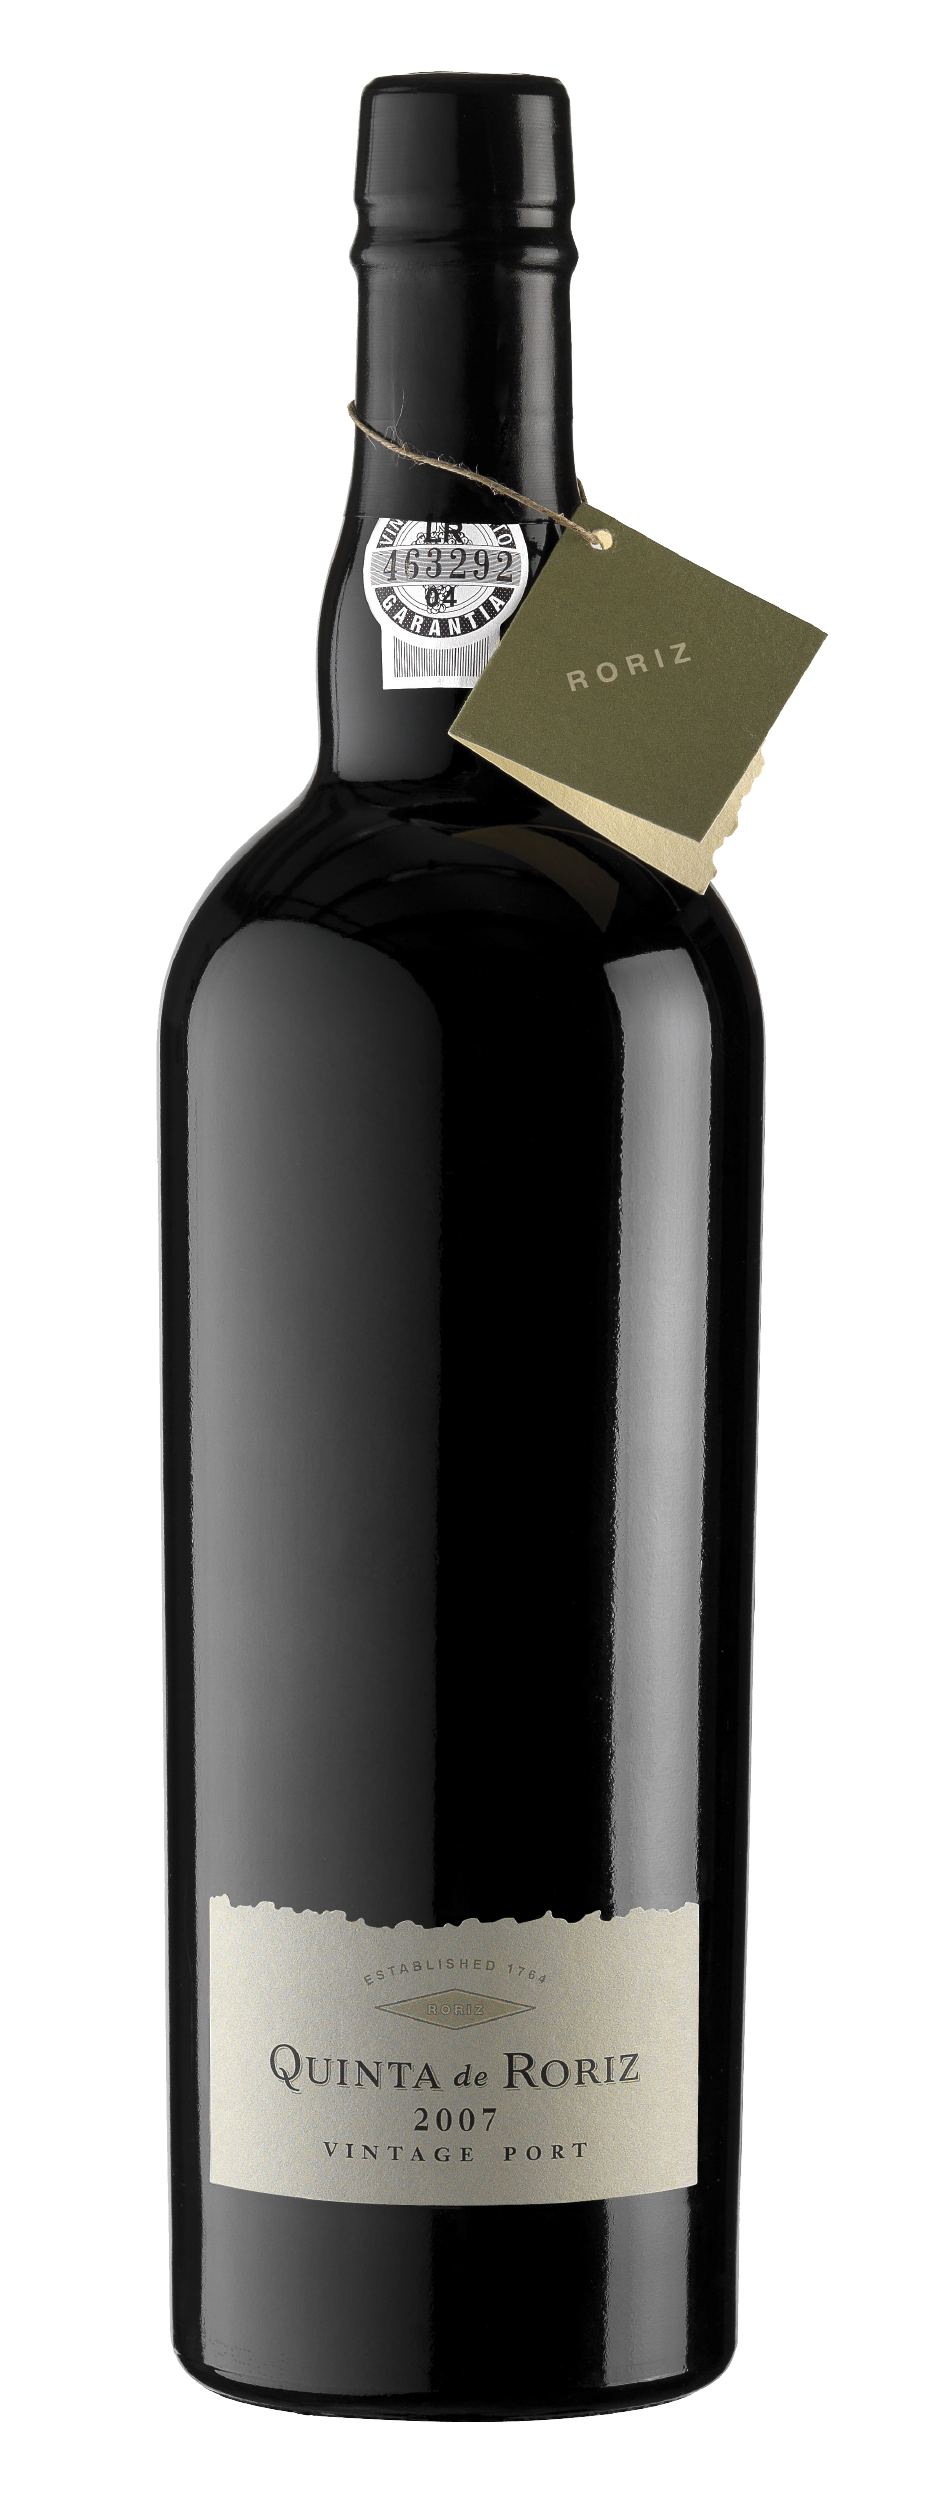 Product Image for QUINTA DE RORIZ VINTAGE PORT 2007